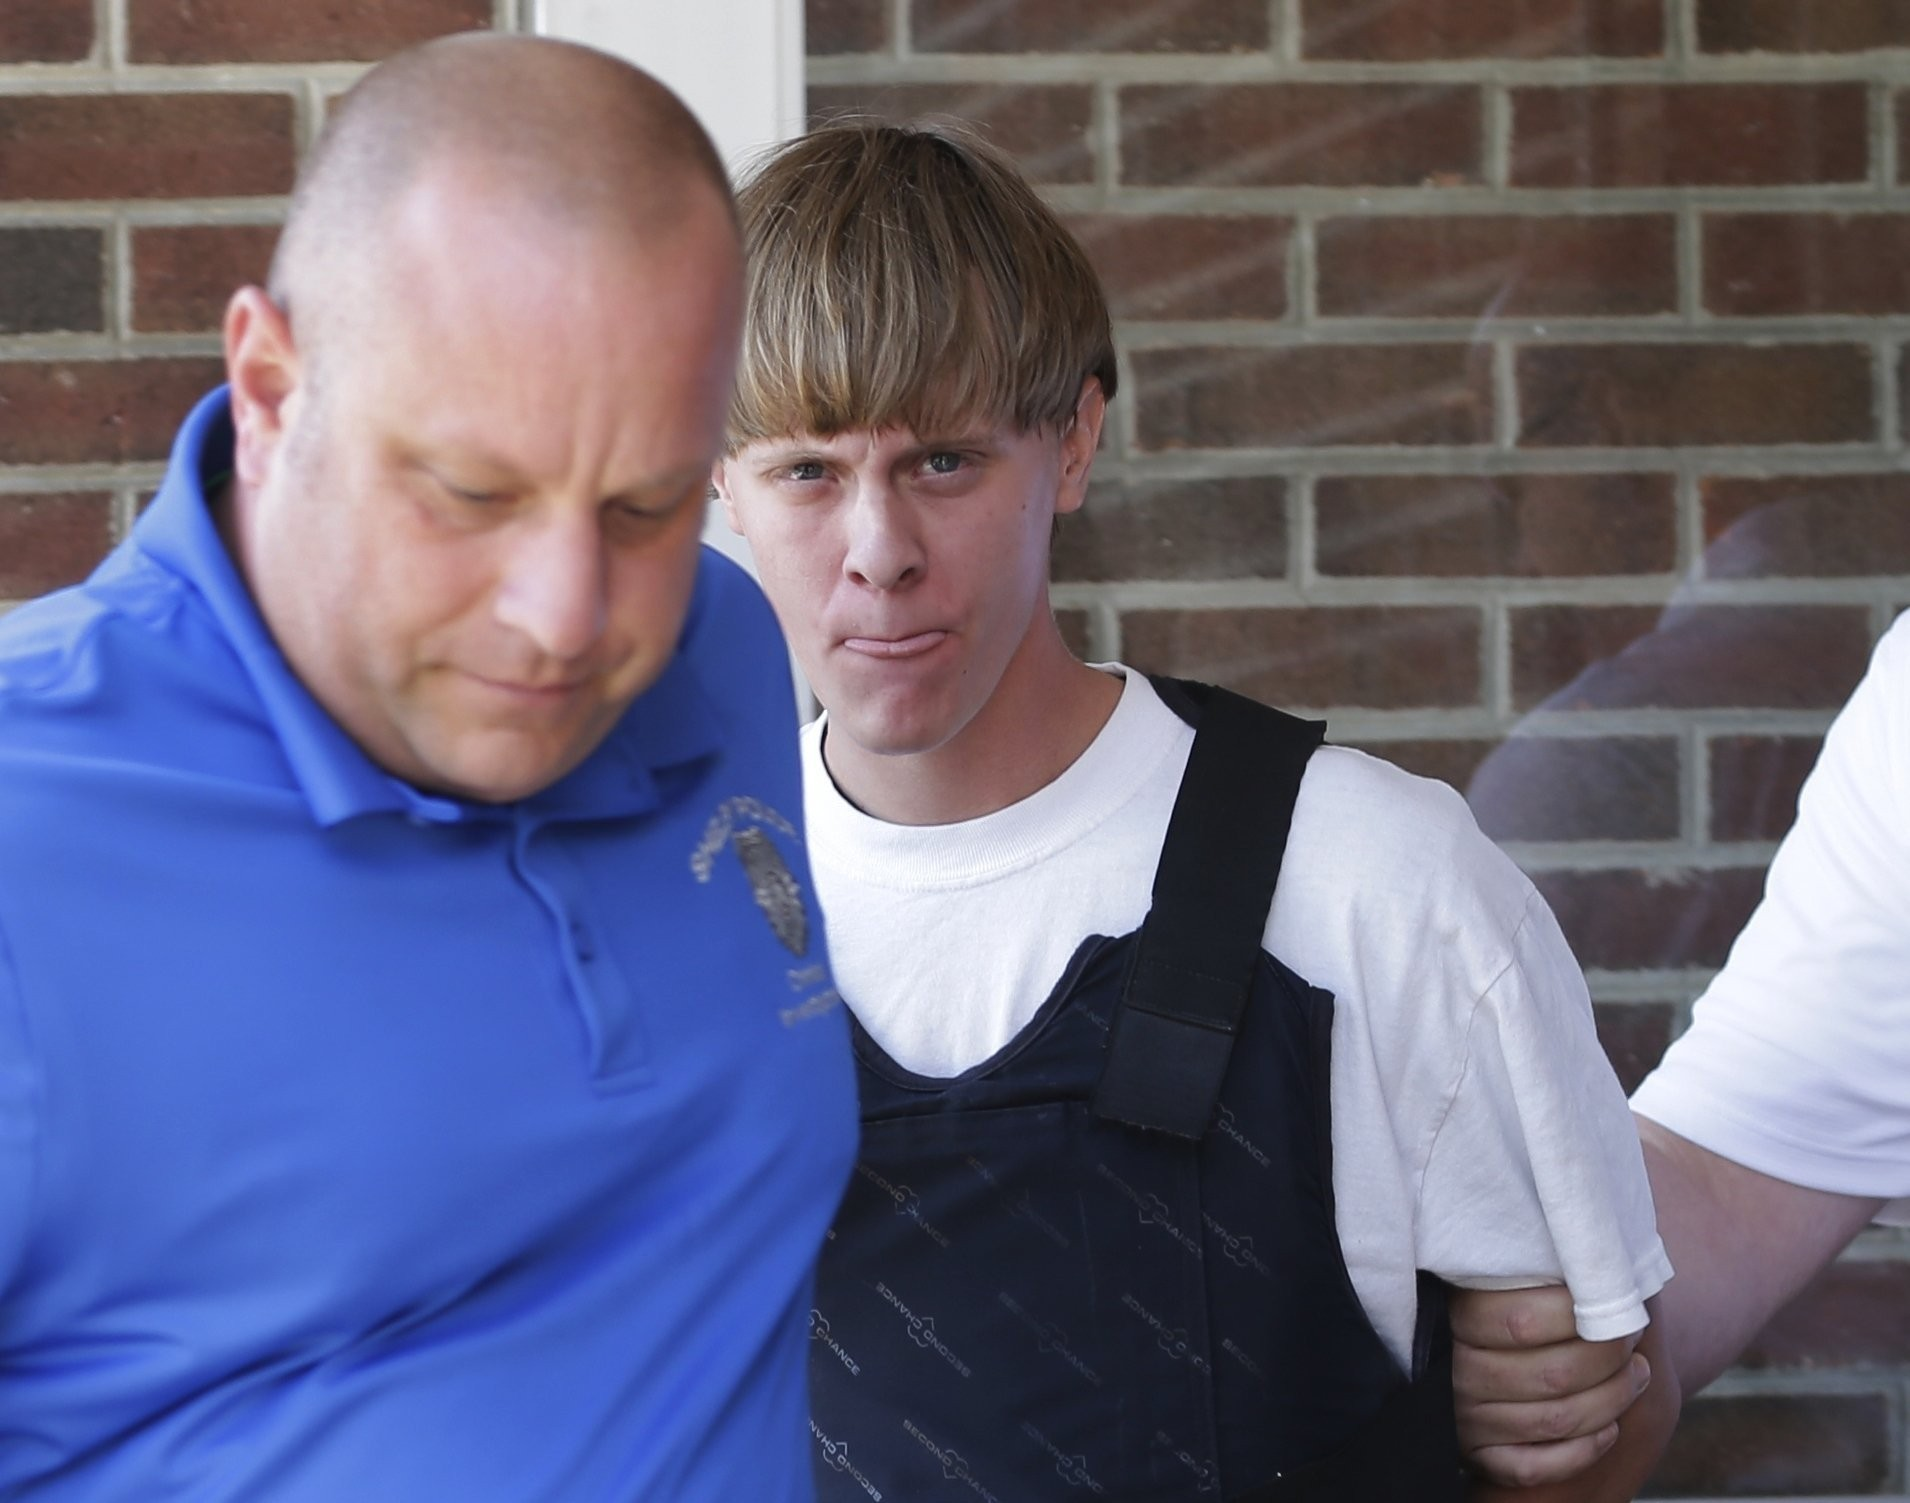 After mass killing, Dylann Roof headed toward 2nd black church which had canceled Bible study: documents